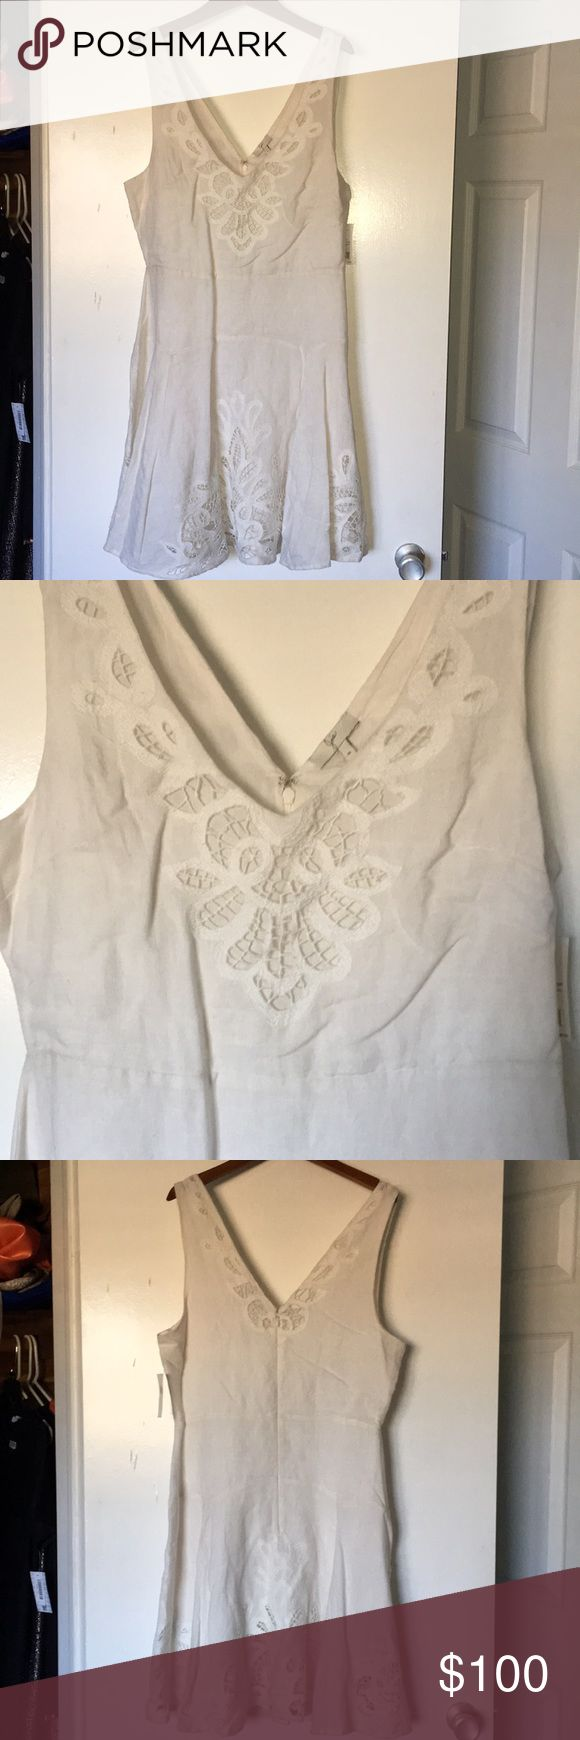 """Gorgeous Ivory Joie Dress Brand new with tags! Cotton linen blend with beautiful embroidery detail. 19"""" armpit to armpit, 16"""" at the waist and about 23"""" across the hip. Too small for me so a great deal for you! Would make a beautiful dress for a bridal shower! Joie Dresses Midi"""